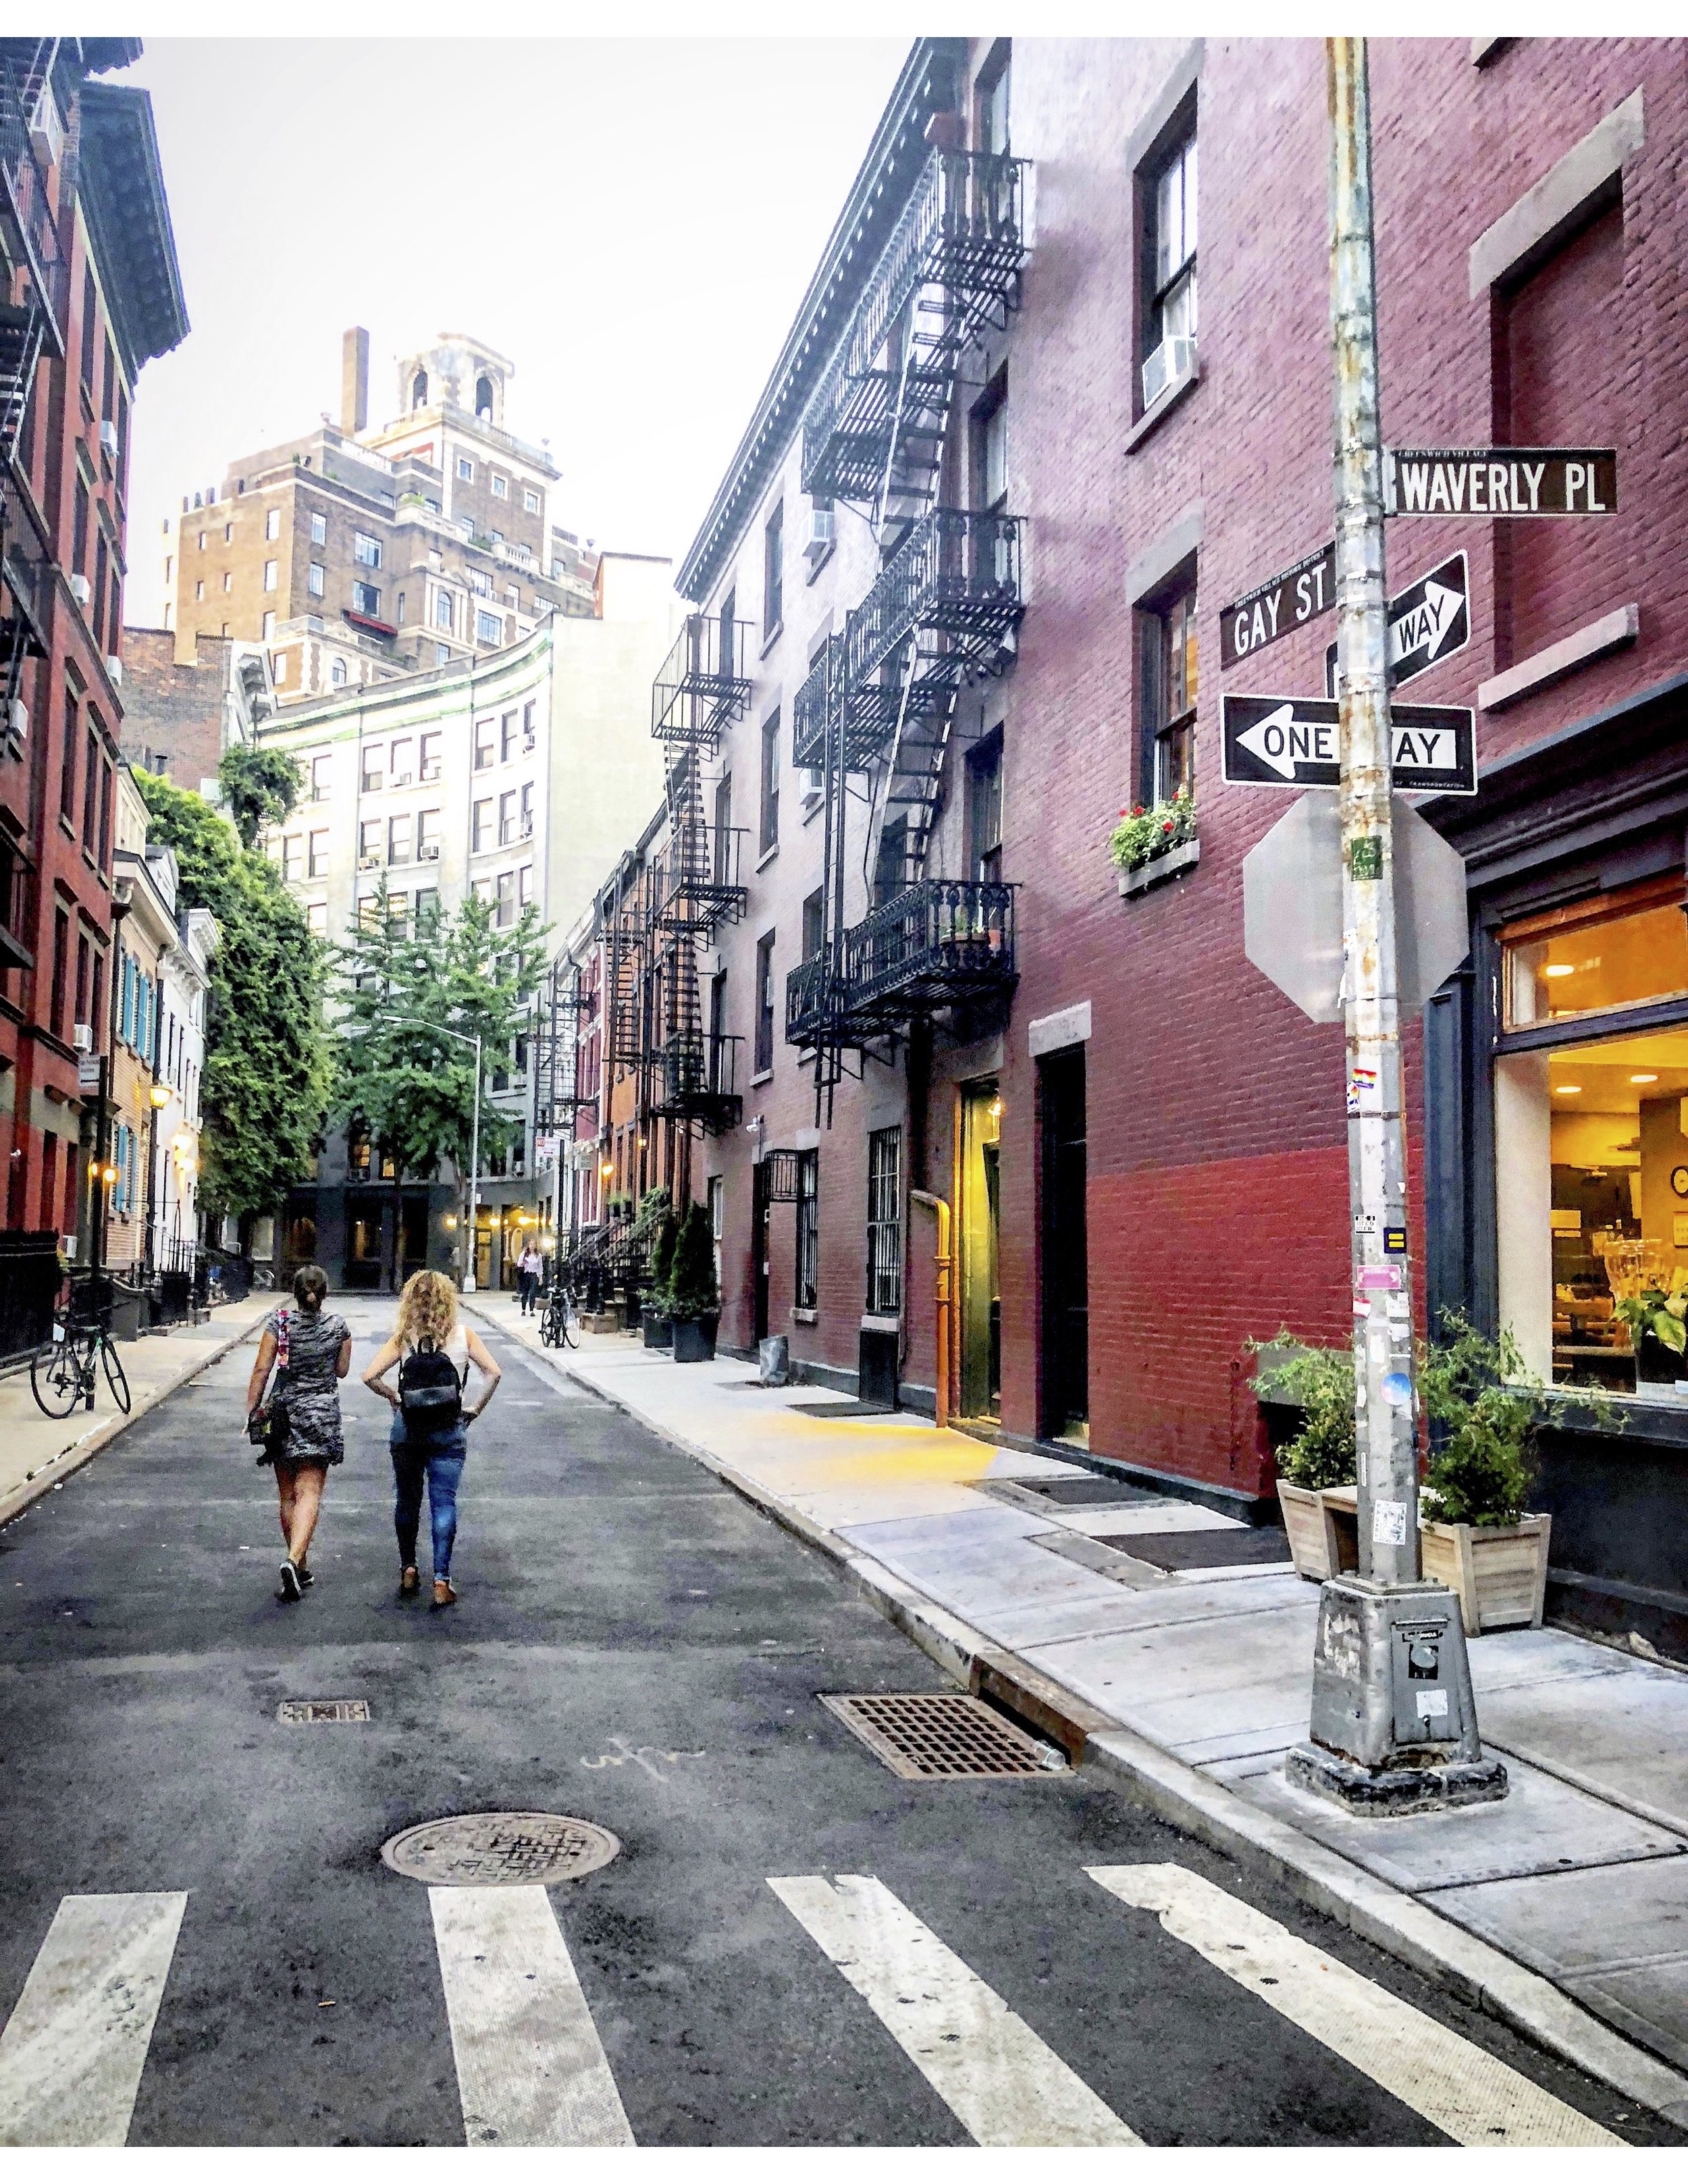 2. Gay St in the West Village - Most lists of top NYC instagram locations include the adorably curved Doyers Street in Chinatown. Well this is my plug for the equally fun curvey spot in the West Village, Gay Street, which connects Waverly Place and Christopher Street. Visit this cute street for a pic and you'll be surrounded by delicious coffee, pastries, shopping, happening restaurants and night life. The West Village is a place I once called home and continues to be my favorite neighborhood in all of NYC.